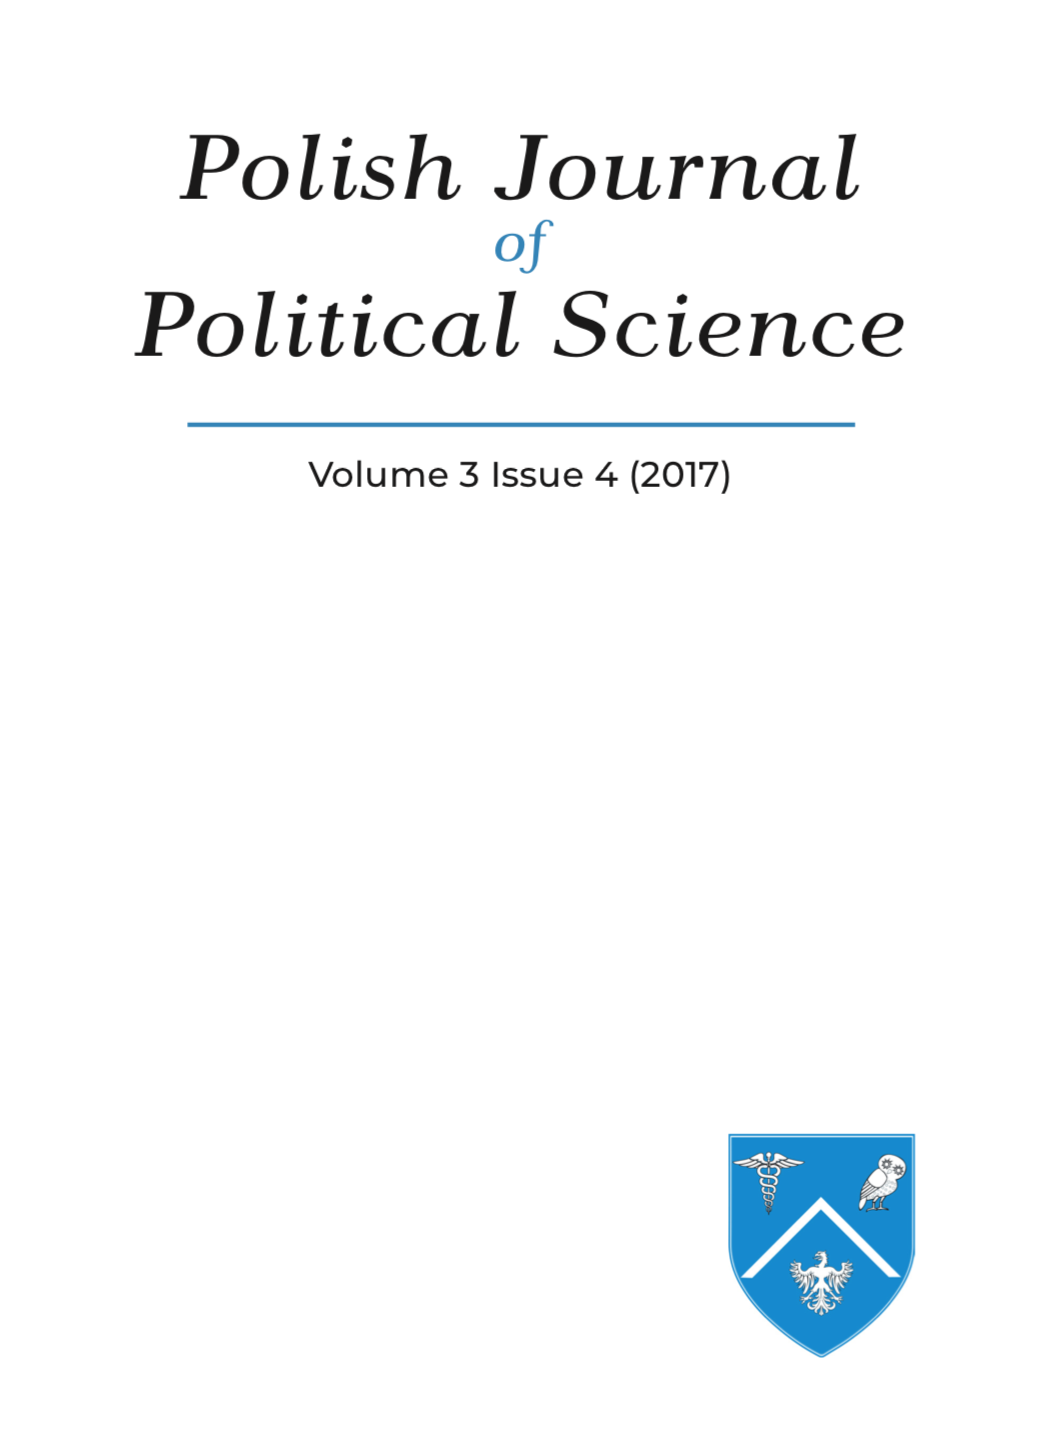 Polish Journal of Political Science